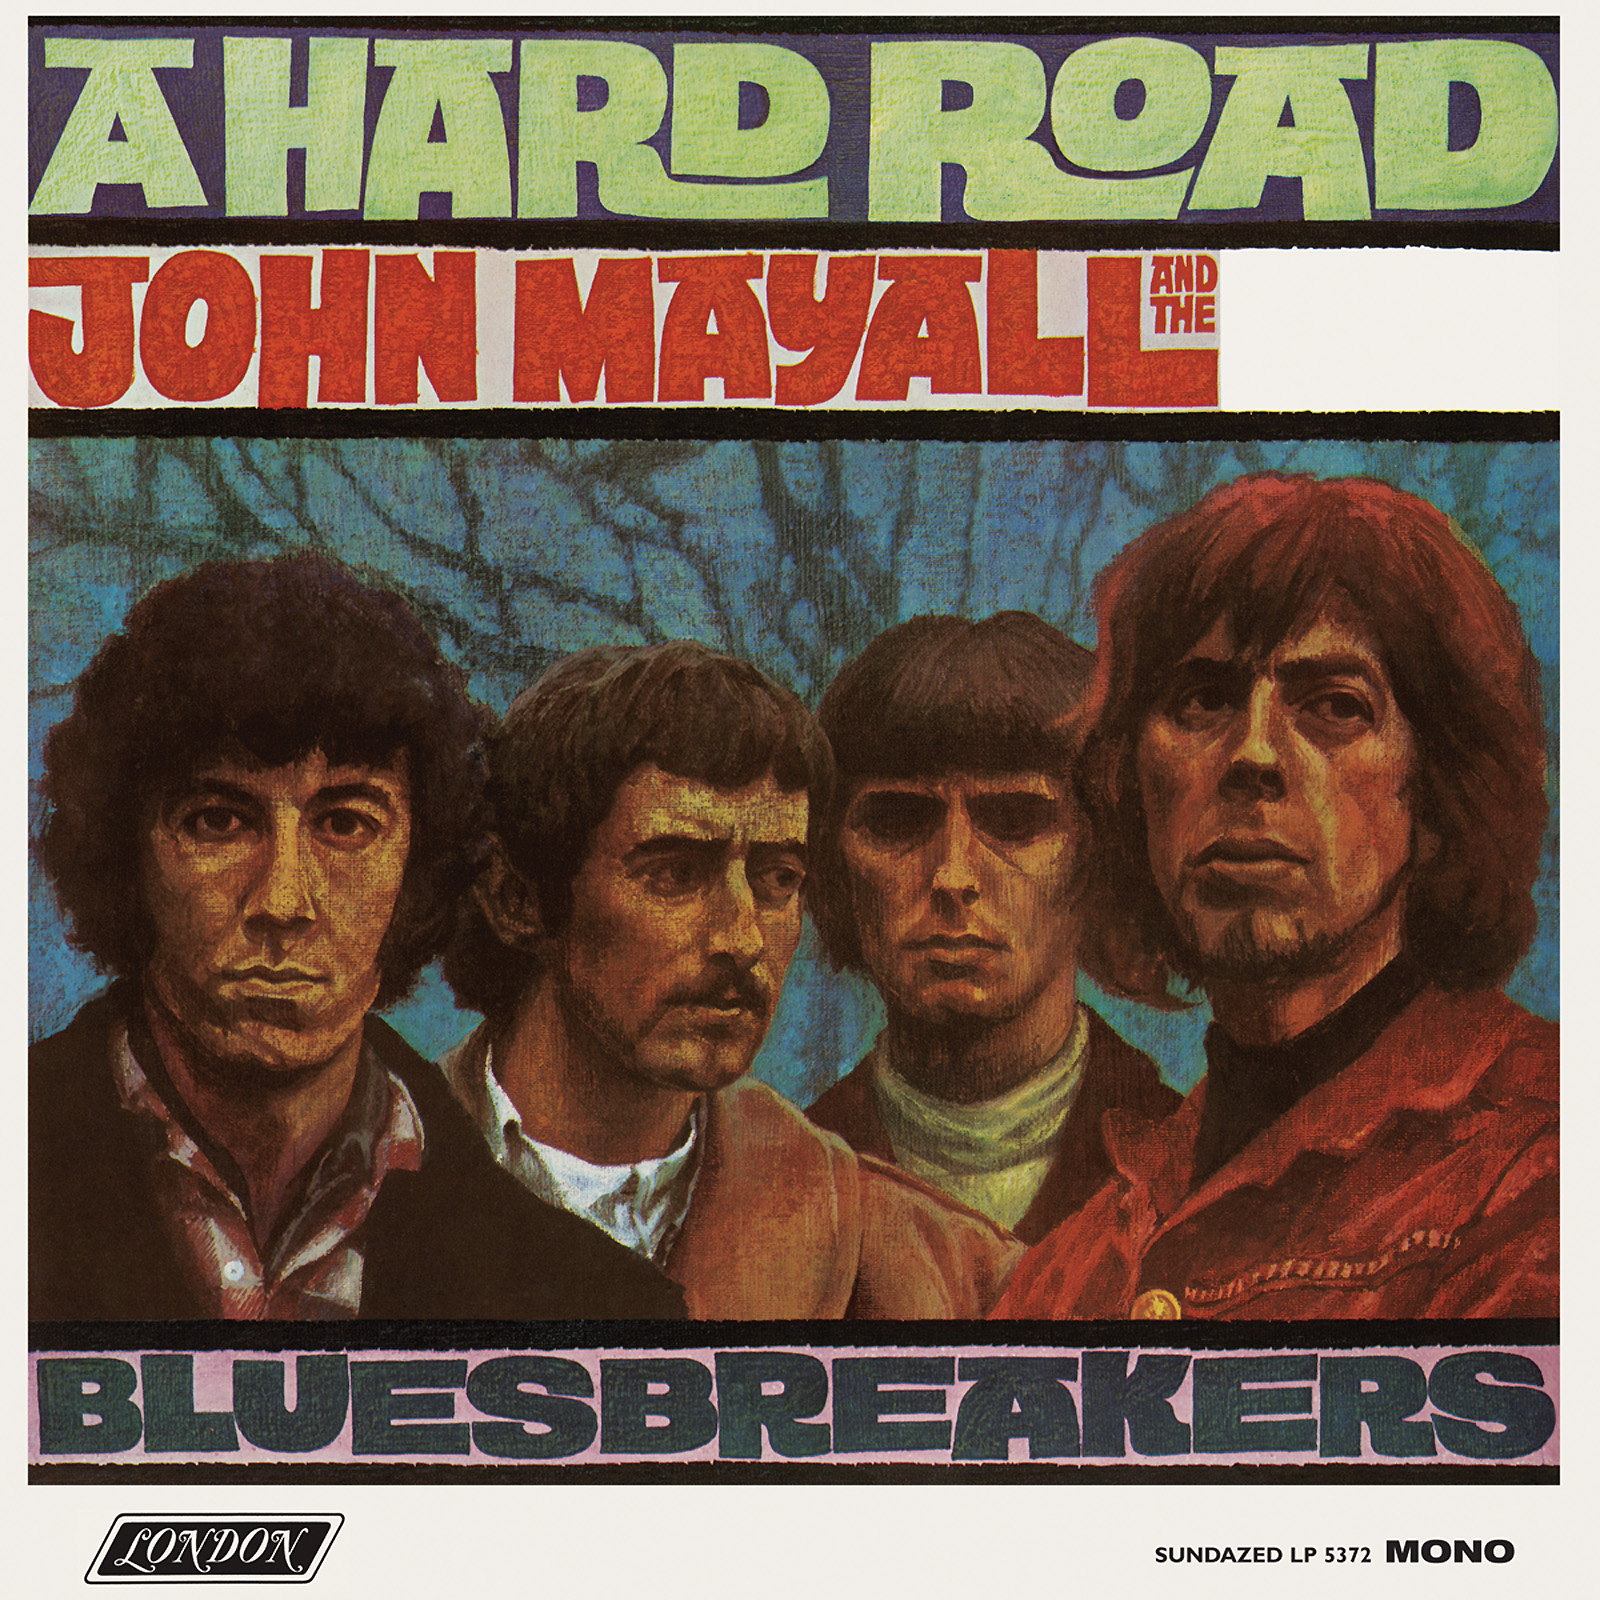 Mayall, John and the Blues Breakers - A Hard Road MONO Edition LP